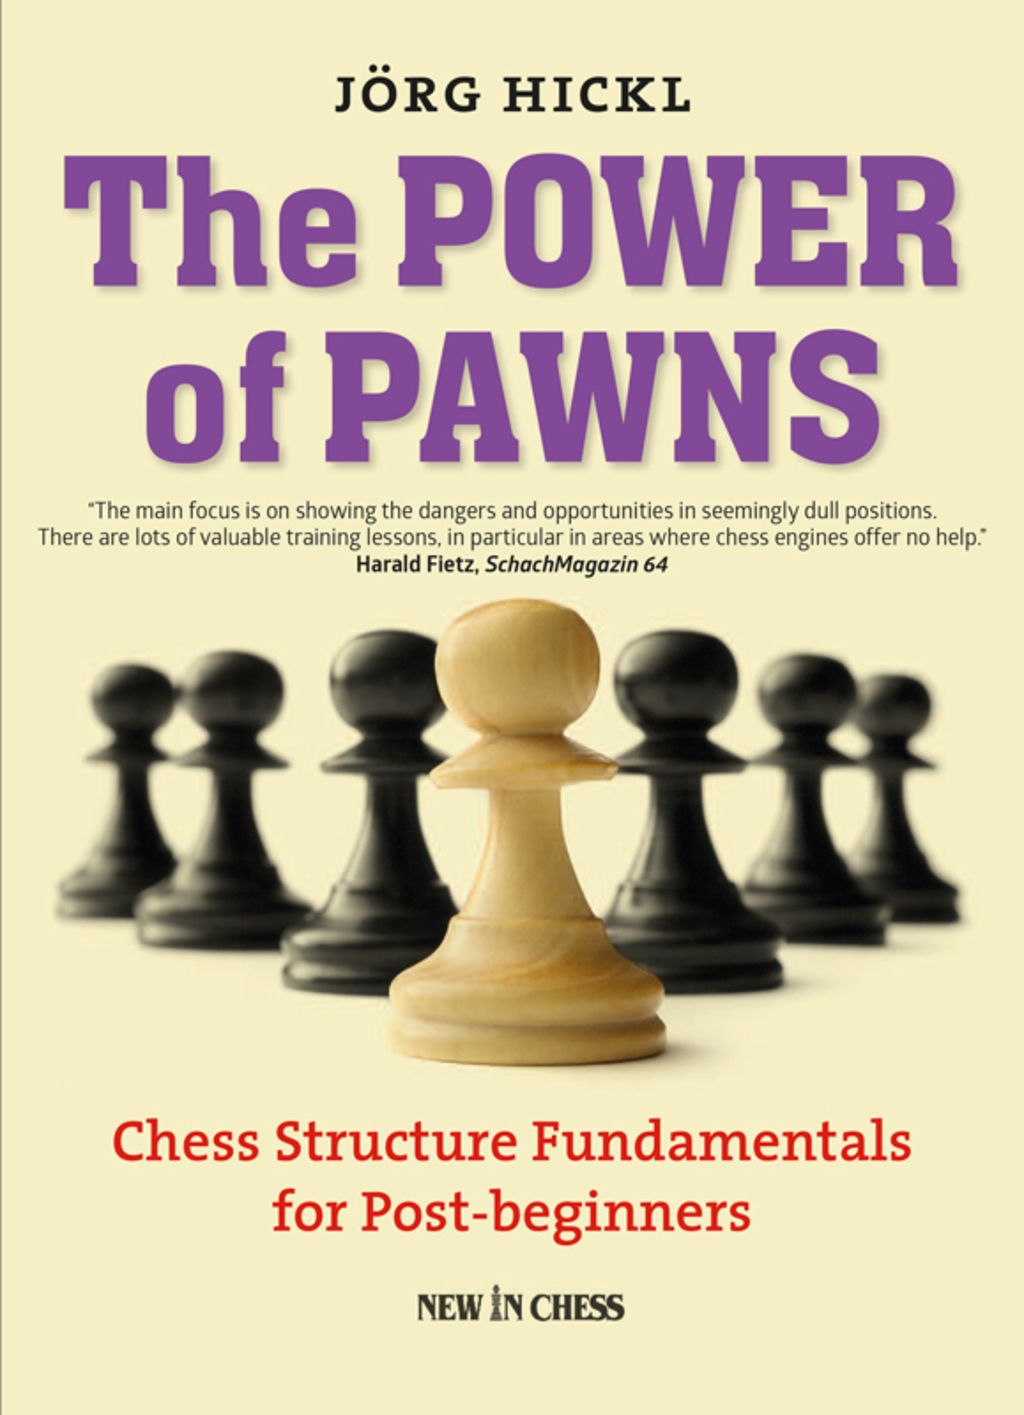 The Power of Pawns Chess Structure Fundamentals for Post